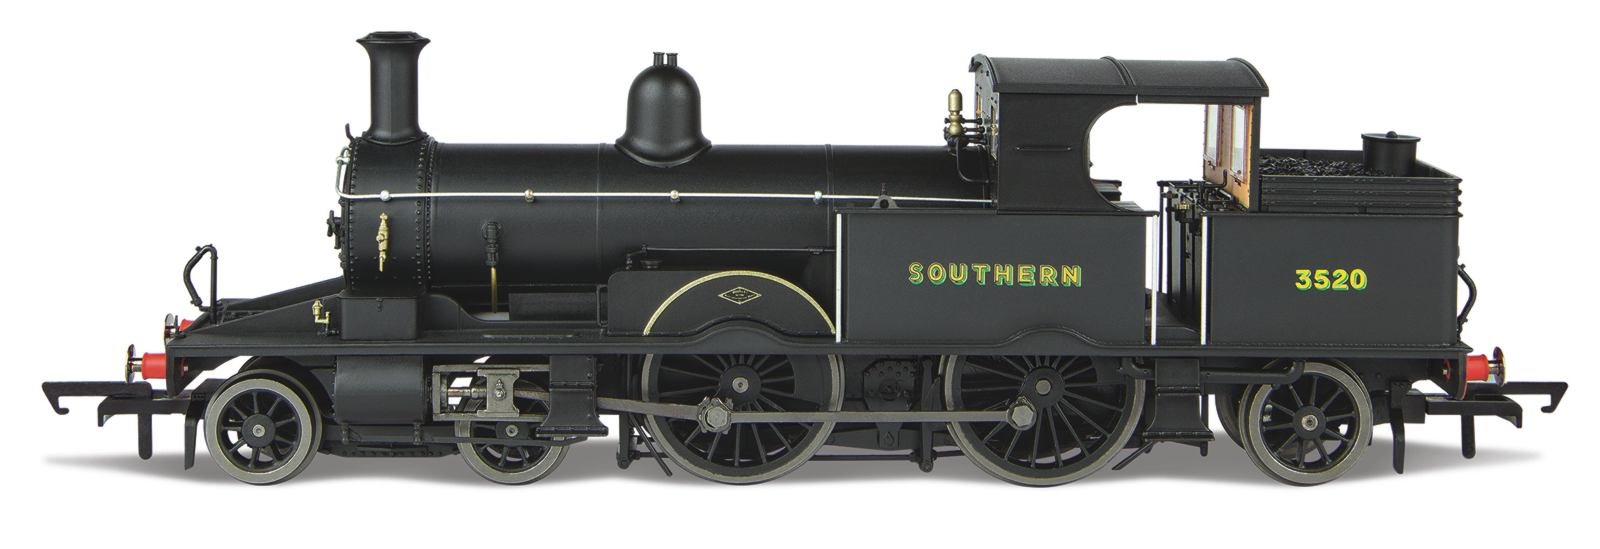 Oxford Rail OR76AR007XS Adams Radial No.3520 Southern Wartime Black (DCC Sound)